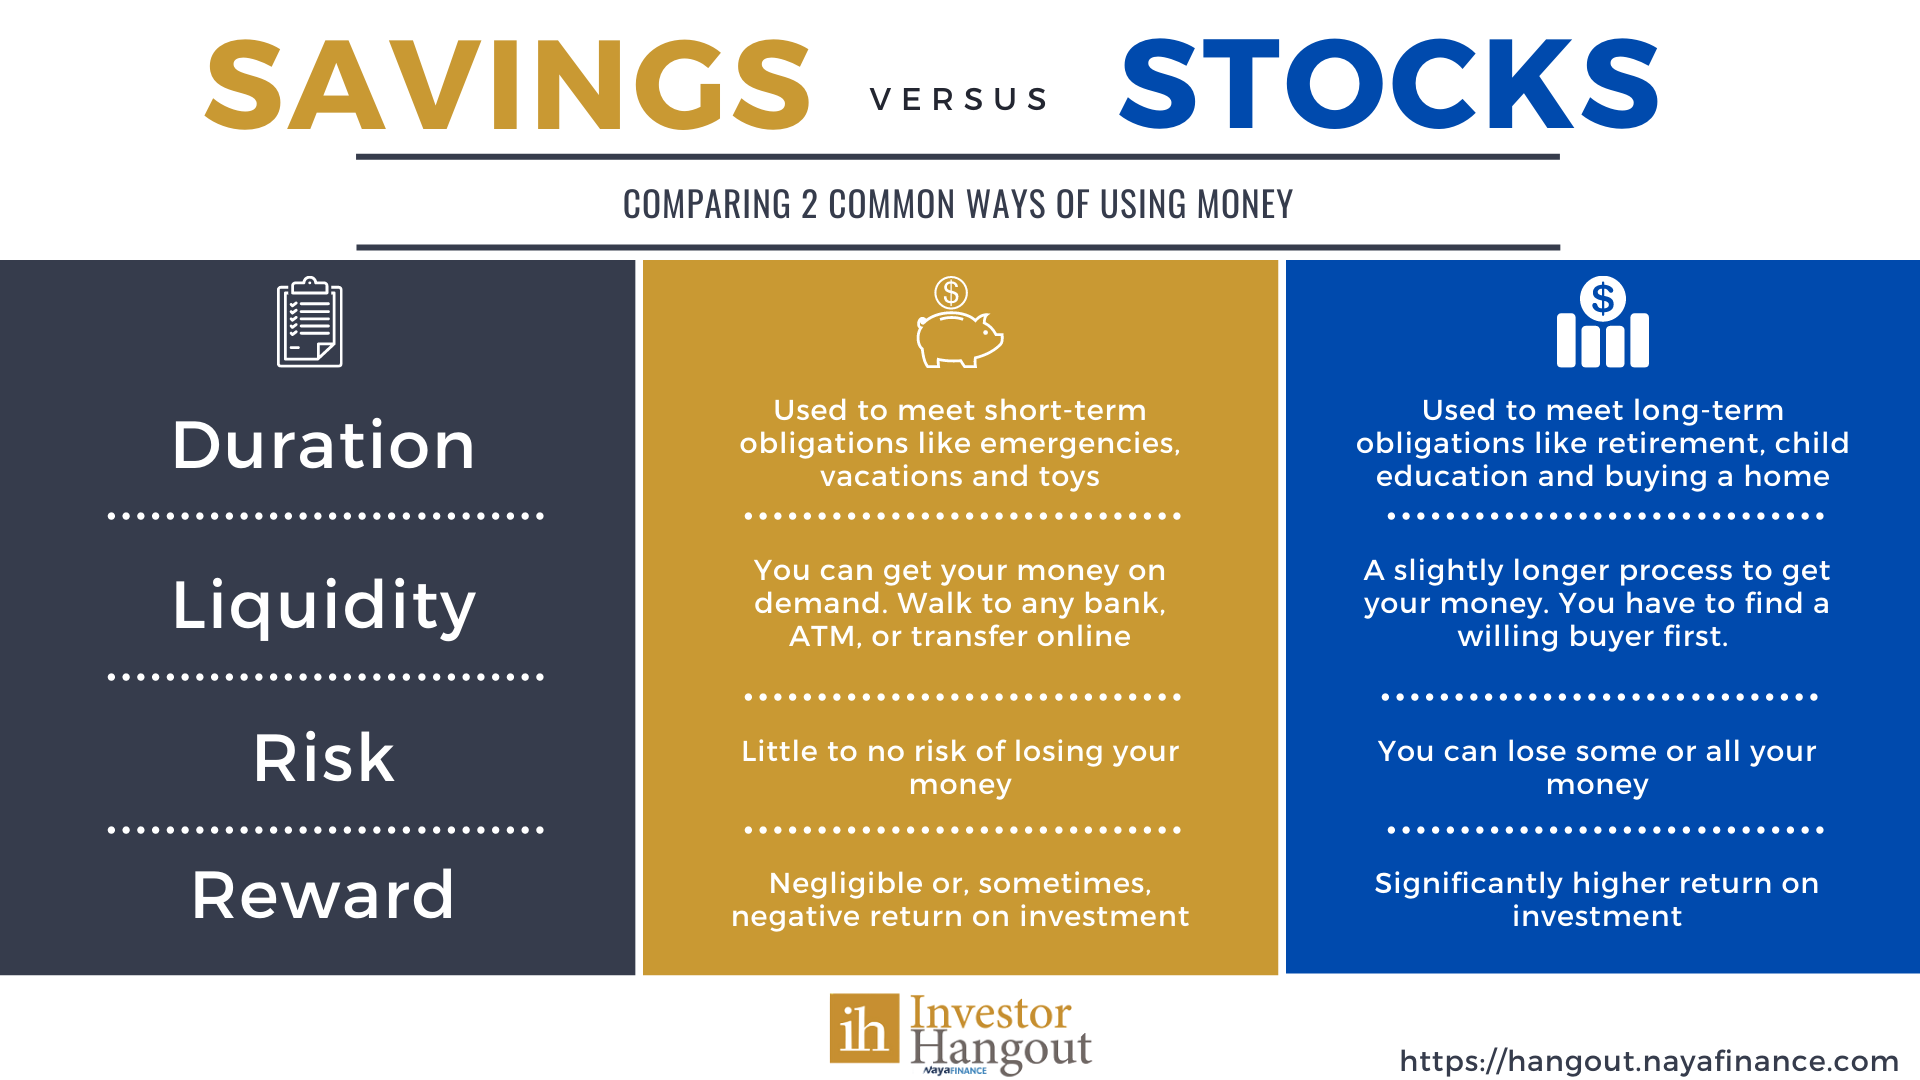 Comparing saving with investing in stocks